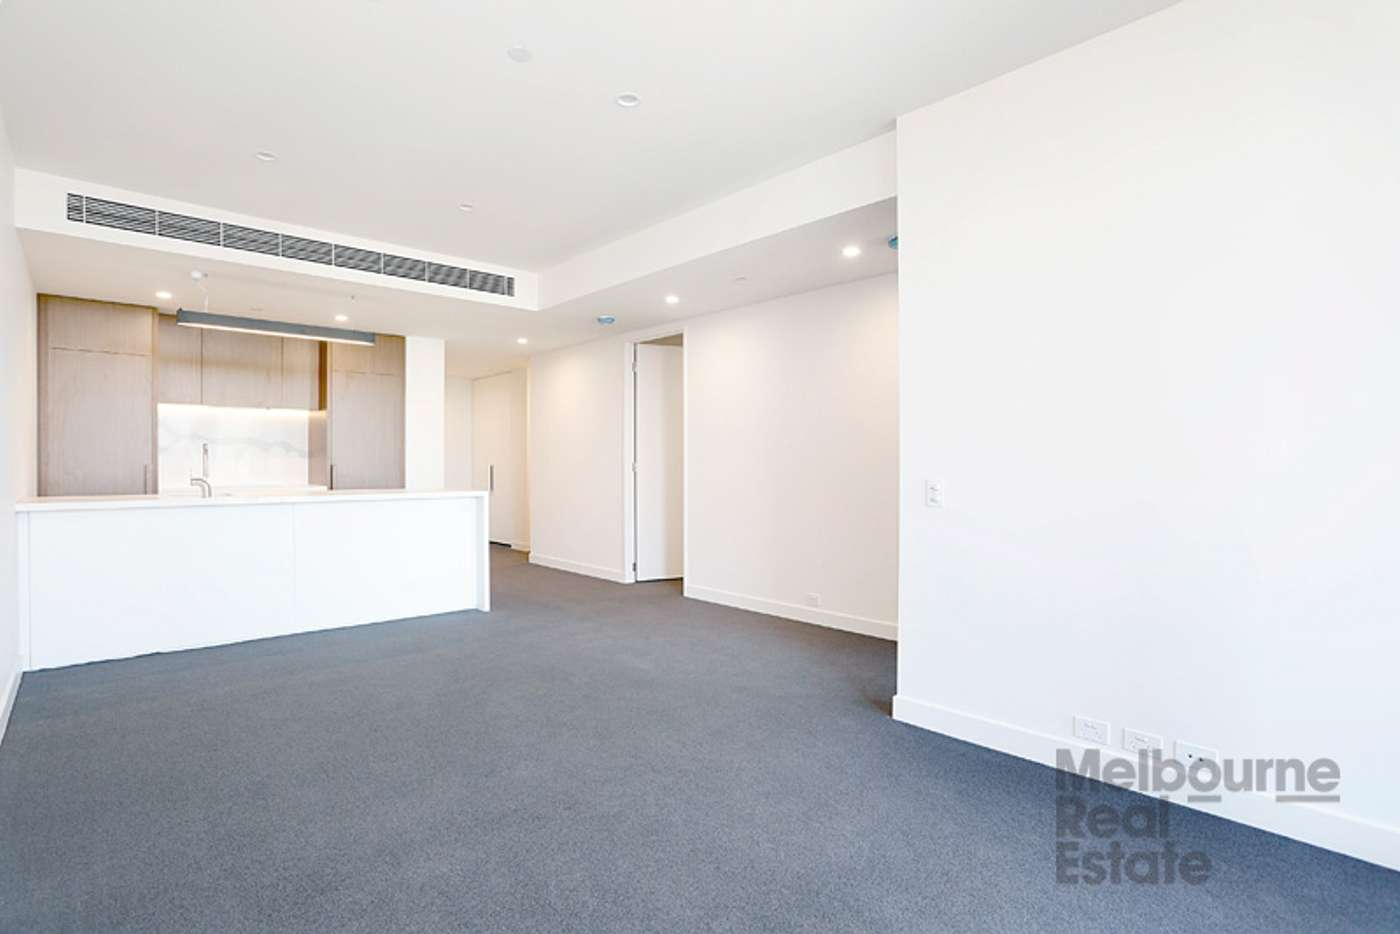 Main view of Homely apartment listing, 521/555 St Kilda Road, Melbourne VIC 3004